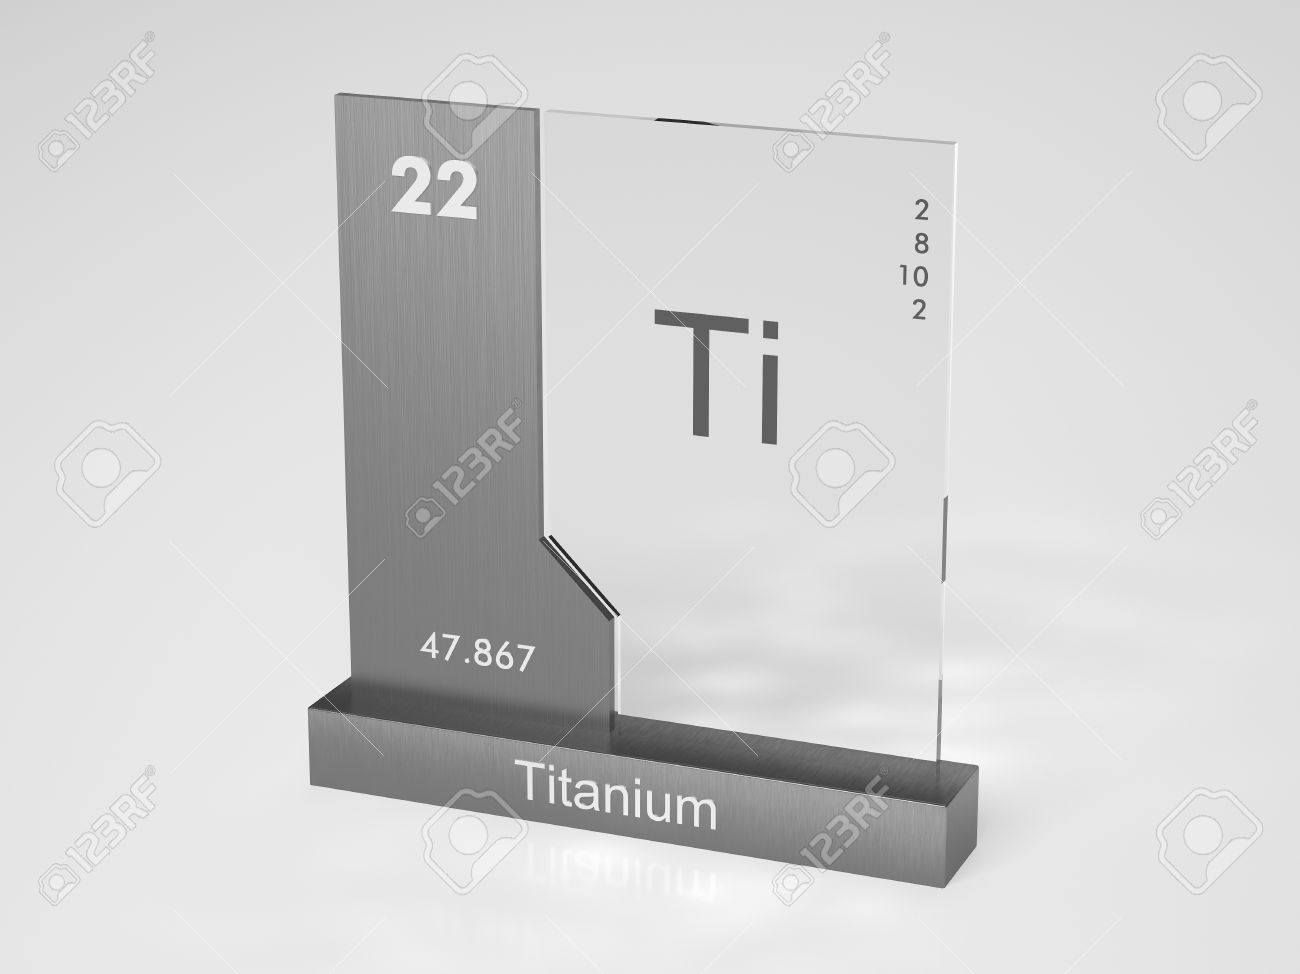 Titanium symbol ti stock photo picture and royalty free image titanium symbol ti stock photo 10230153 urtaz Image collections